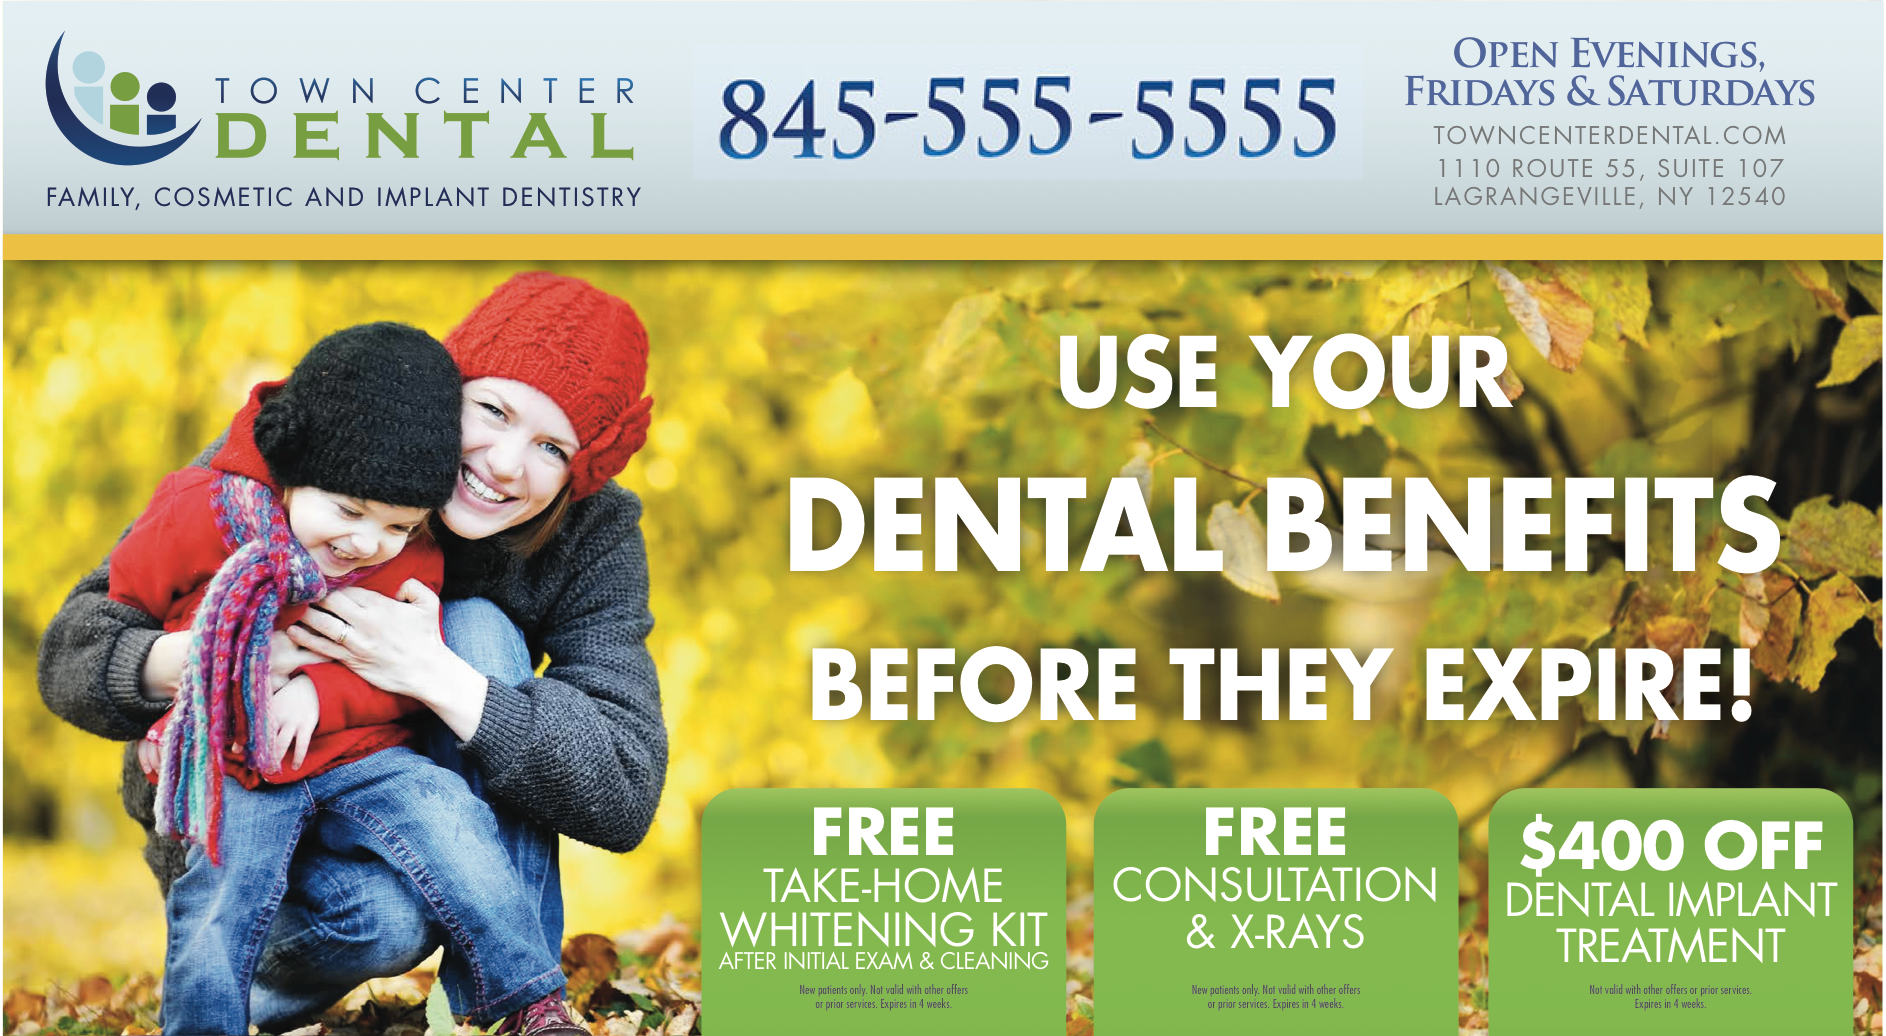 Custom Dental Postcard Design by DentalMarketing.net